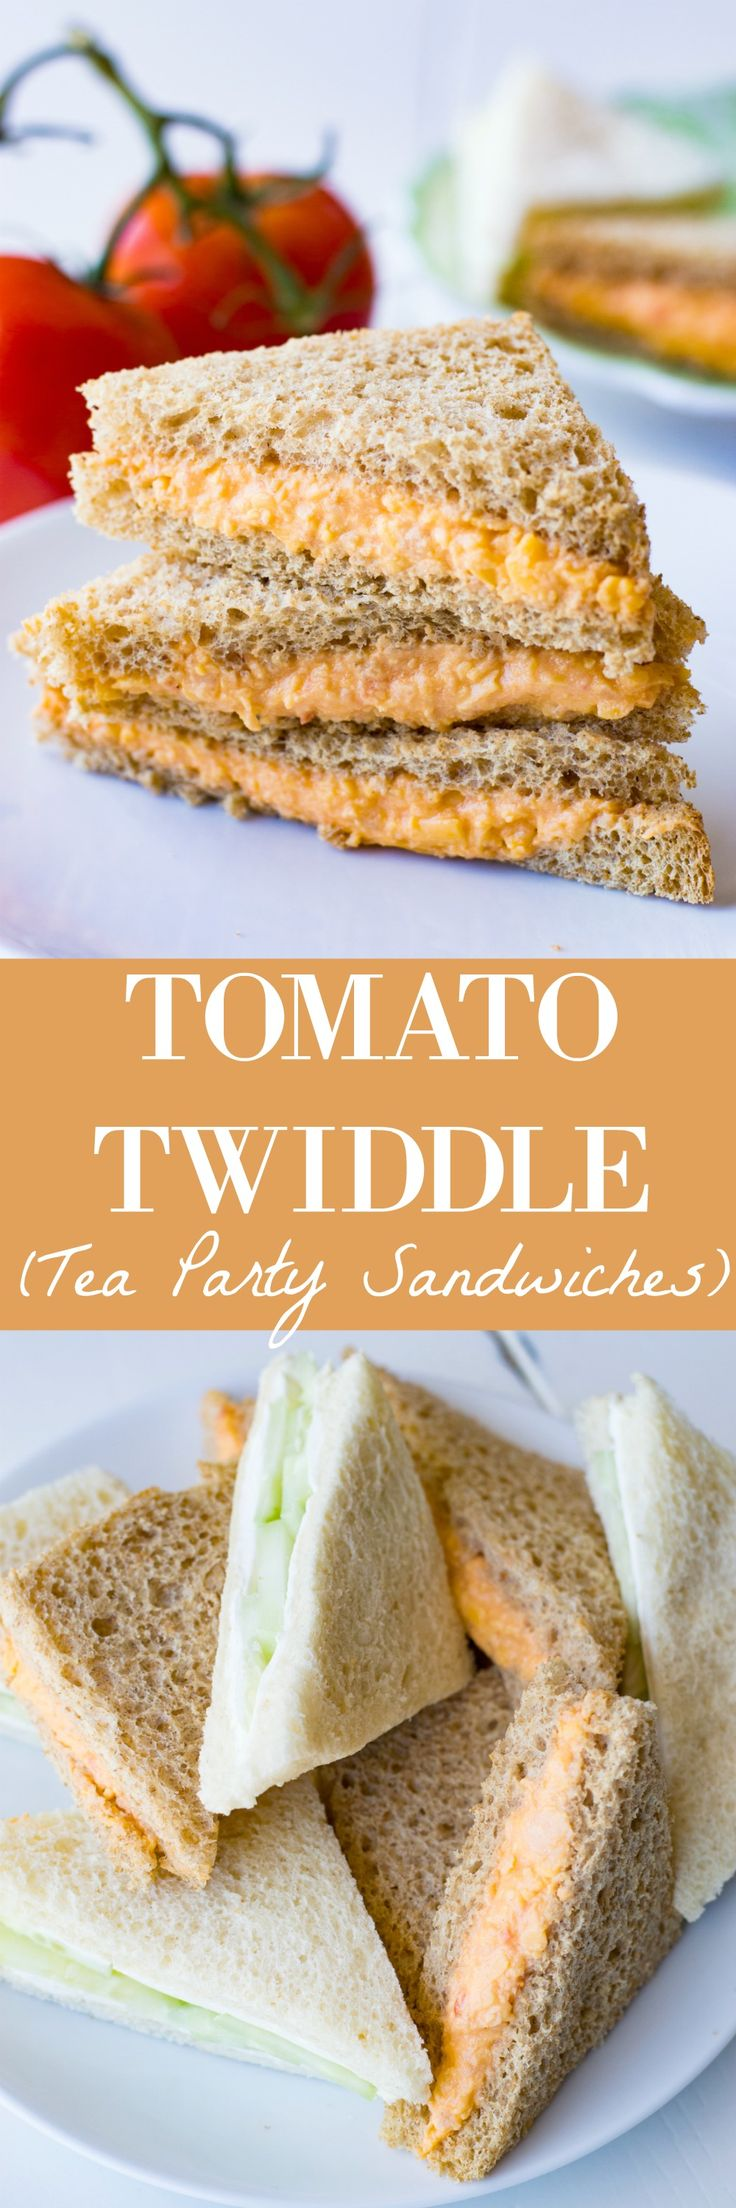 how to make tea sandwiches